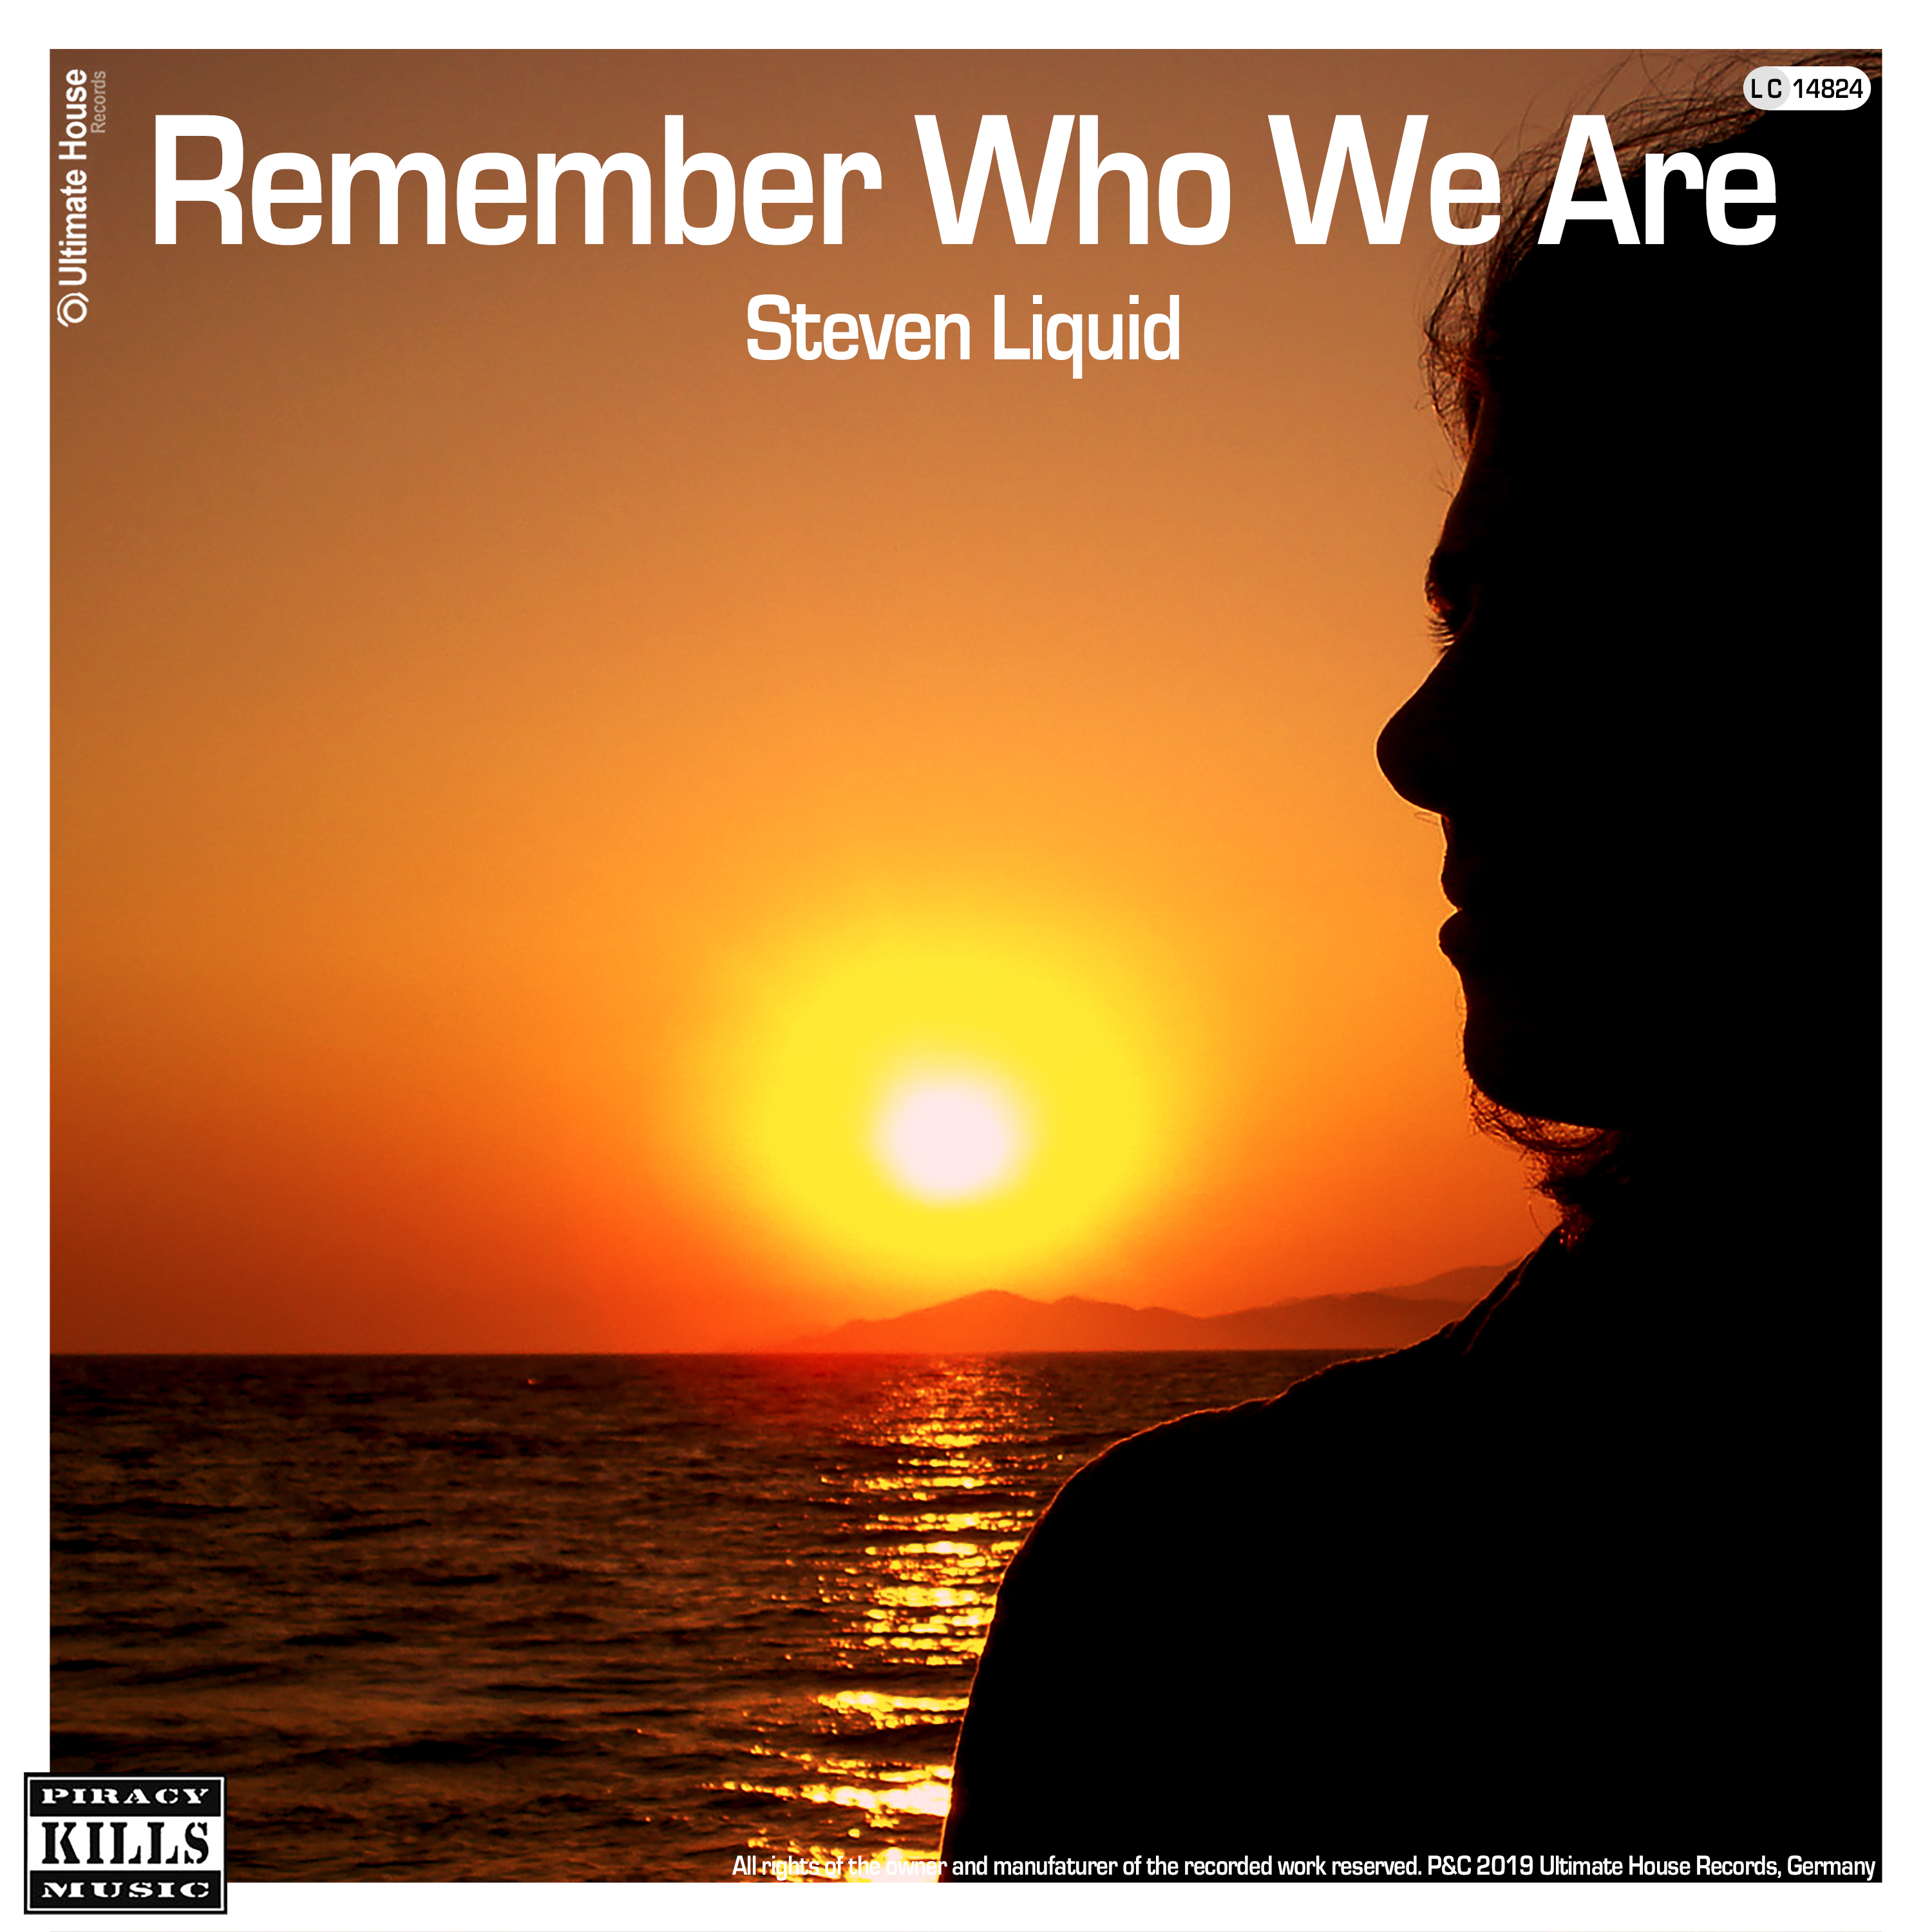 http://www.ultimate-house-records.com/wp-content/uploads/2019/03/ult121-Remember_Who_We_Are-3000px.jpg